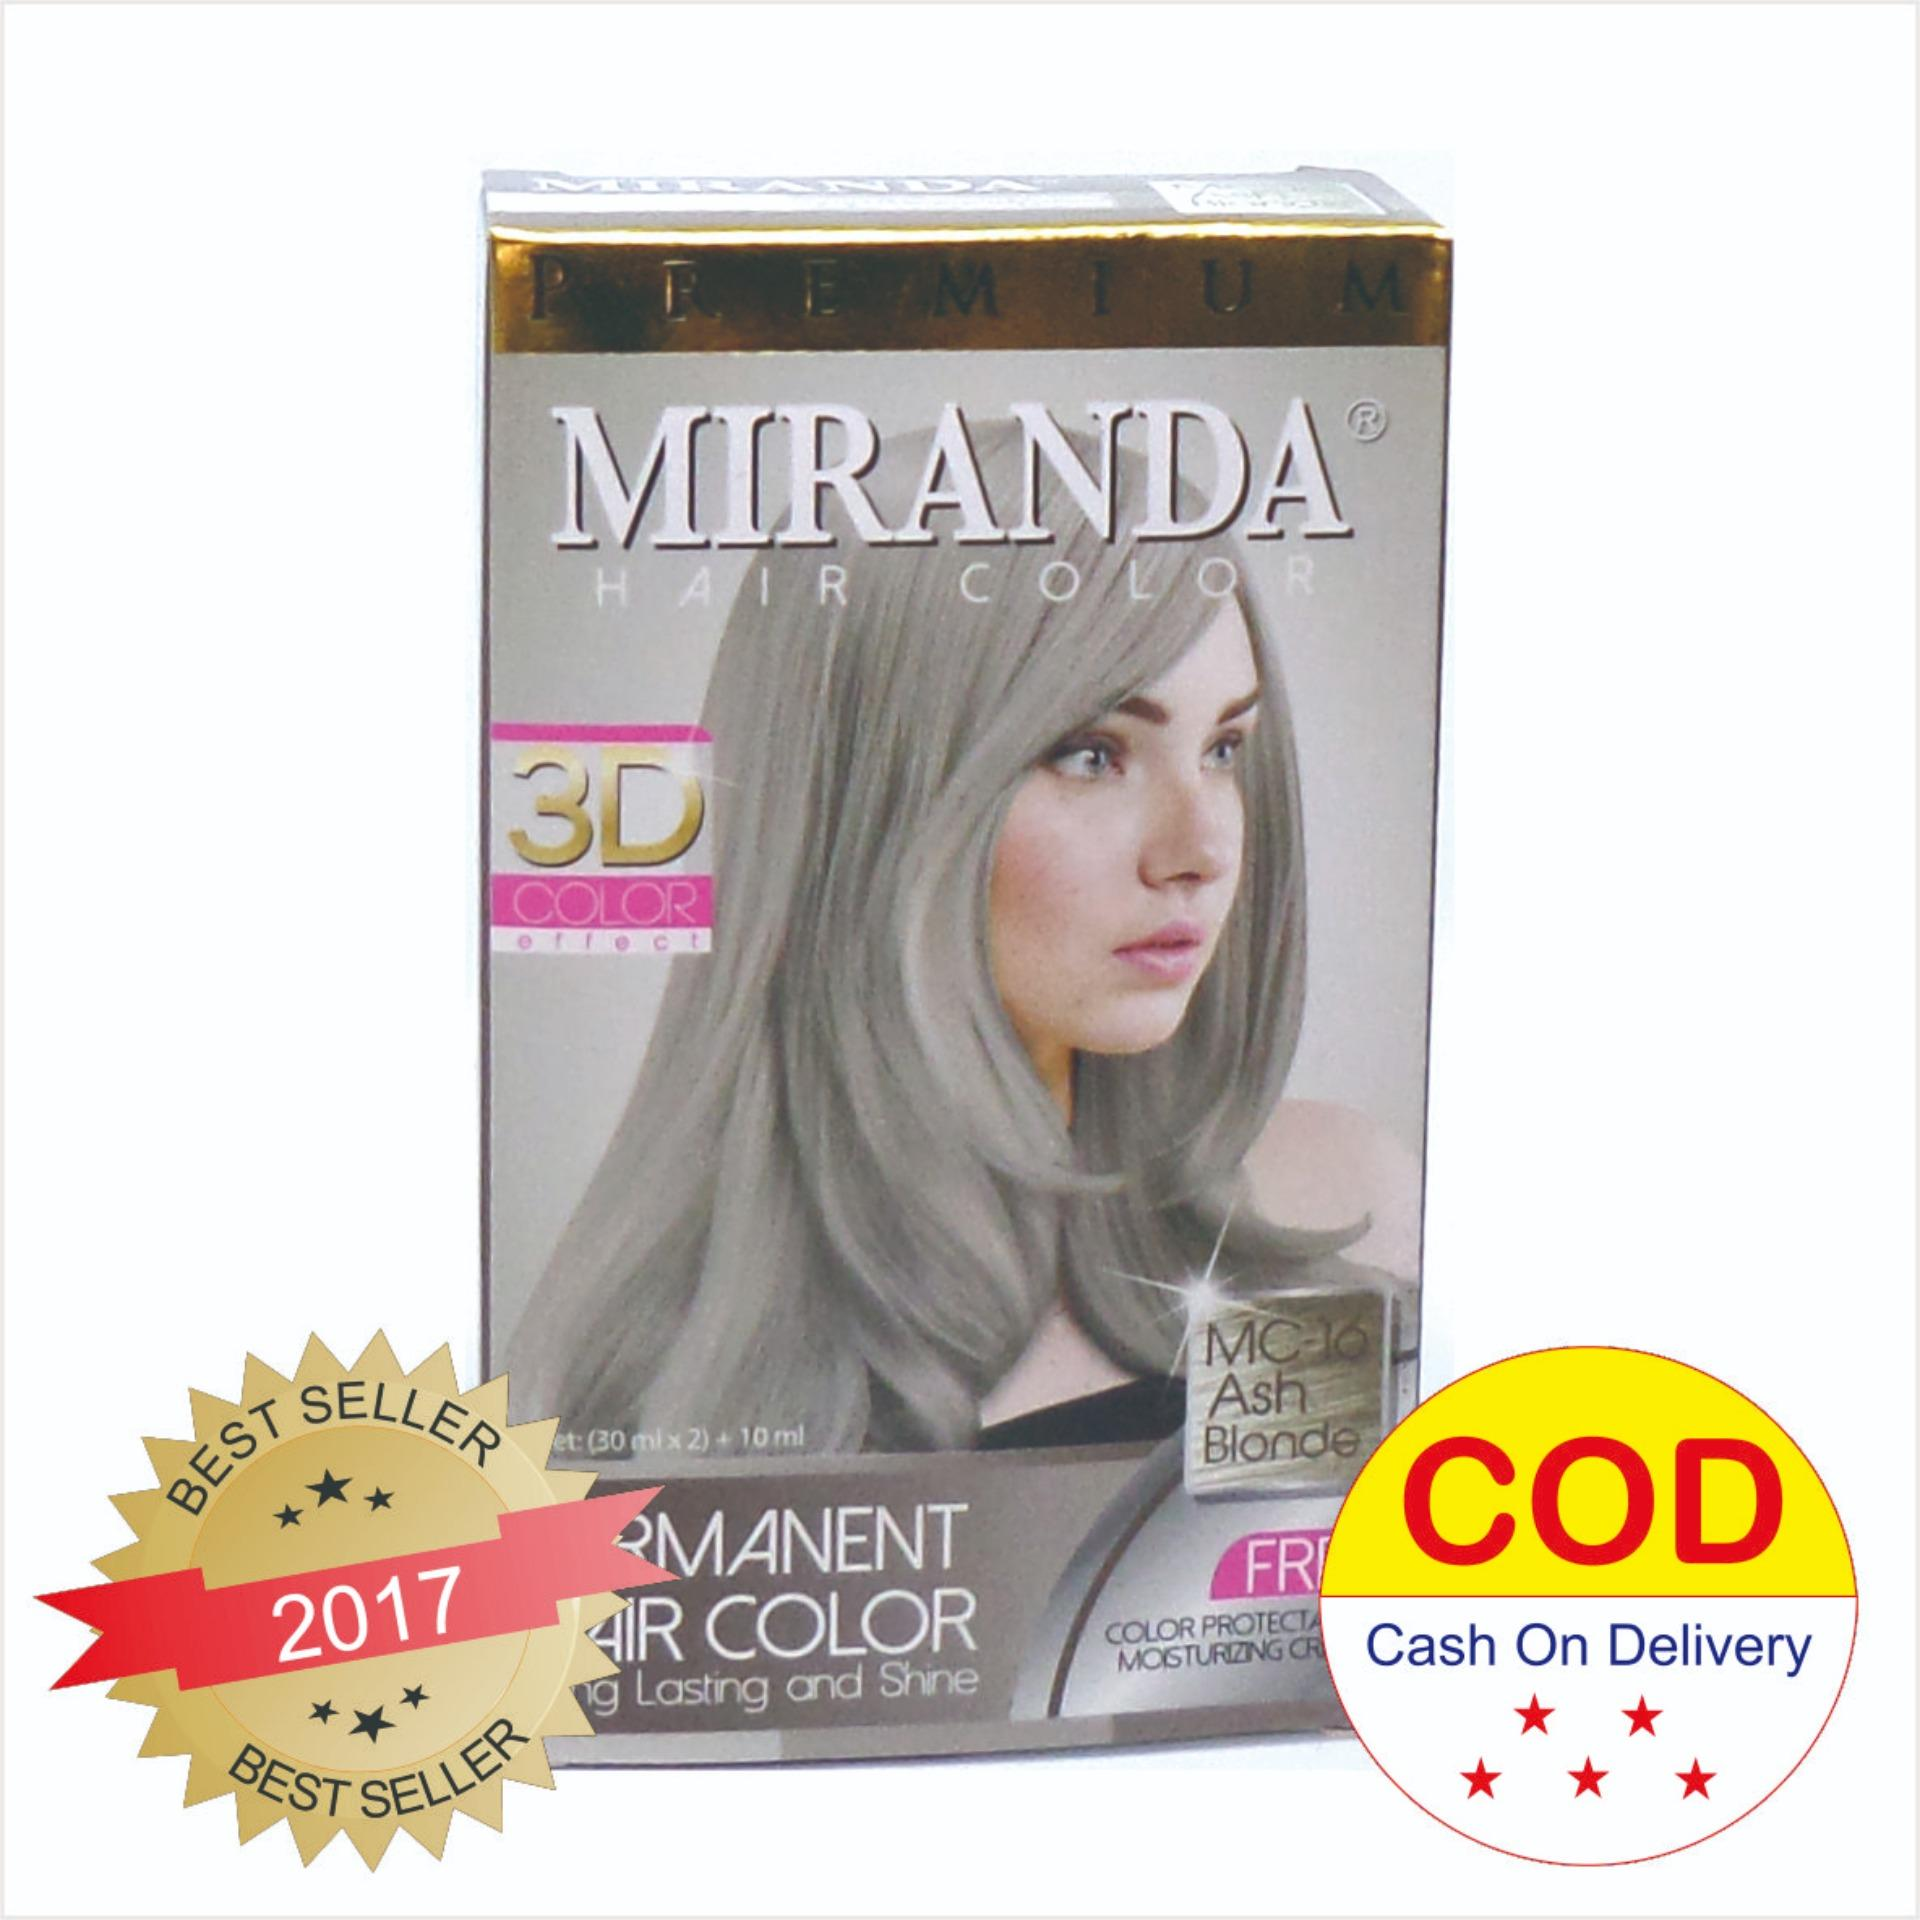 Miranda hair color cat rambut warna Ash blonde MC 16